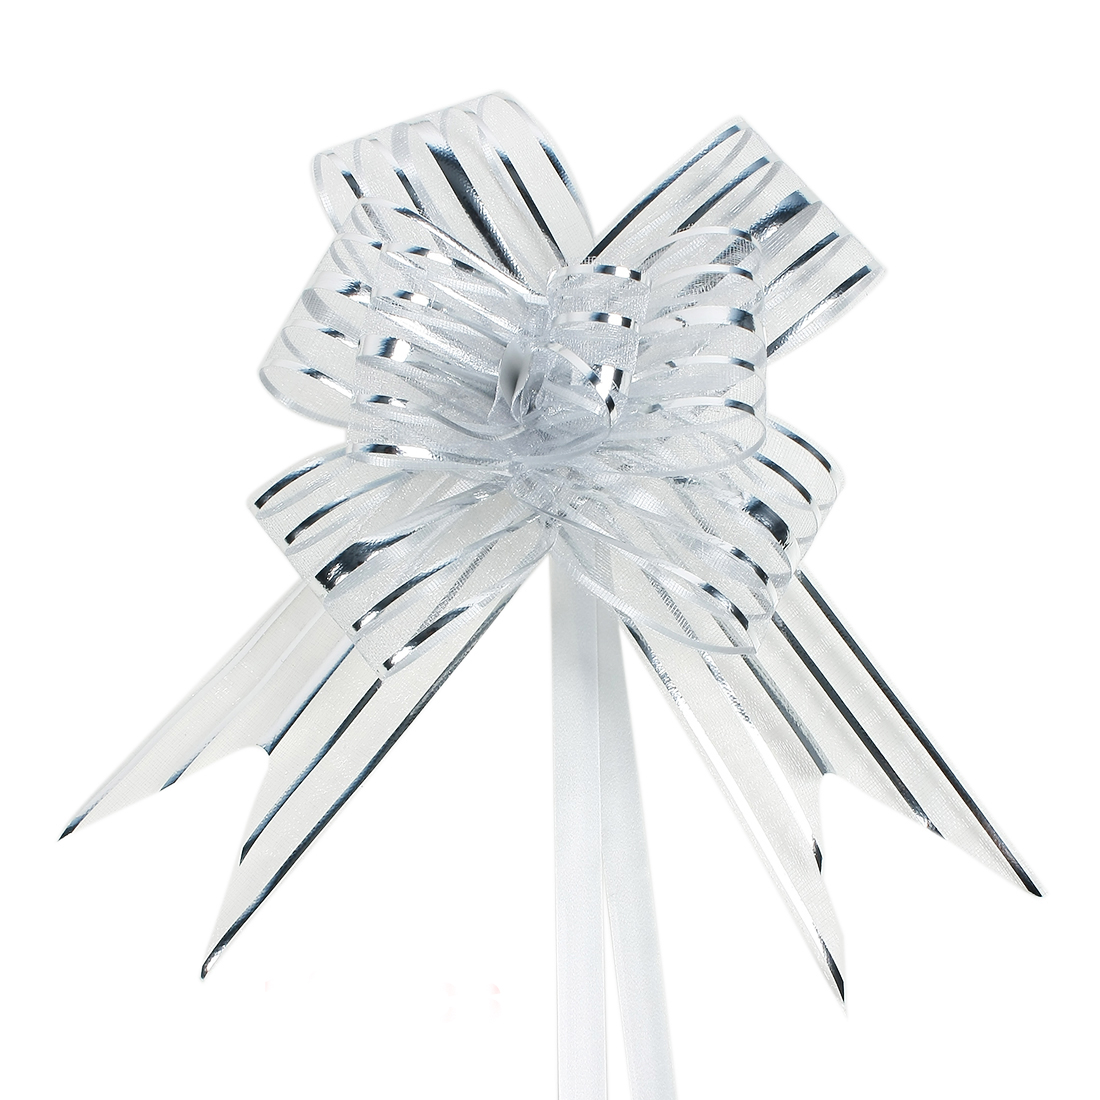 Wedding Party Gift Wrapping Ribbon Pull Bows Decoration Silver Tone 5cm Width 10pcs